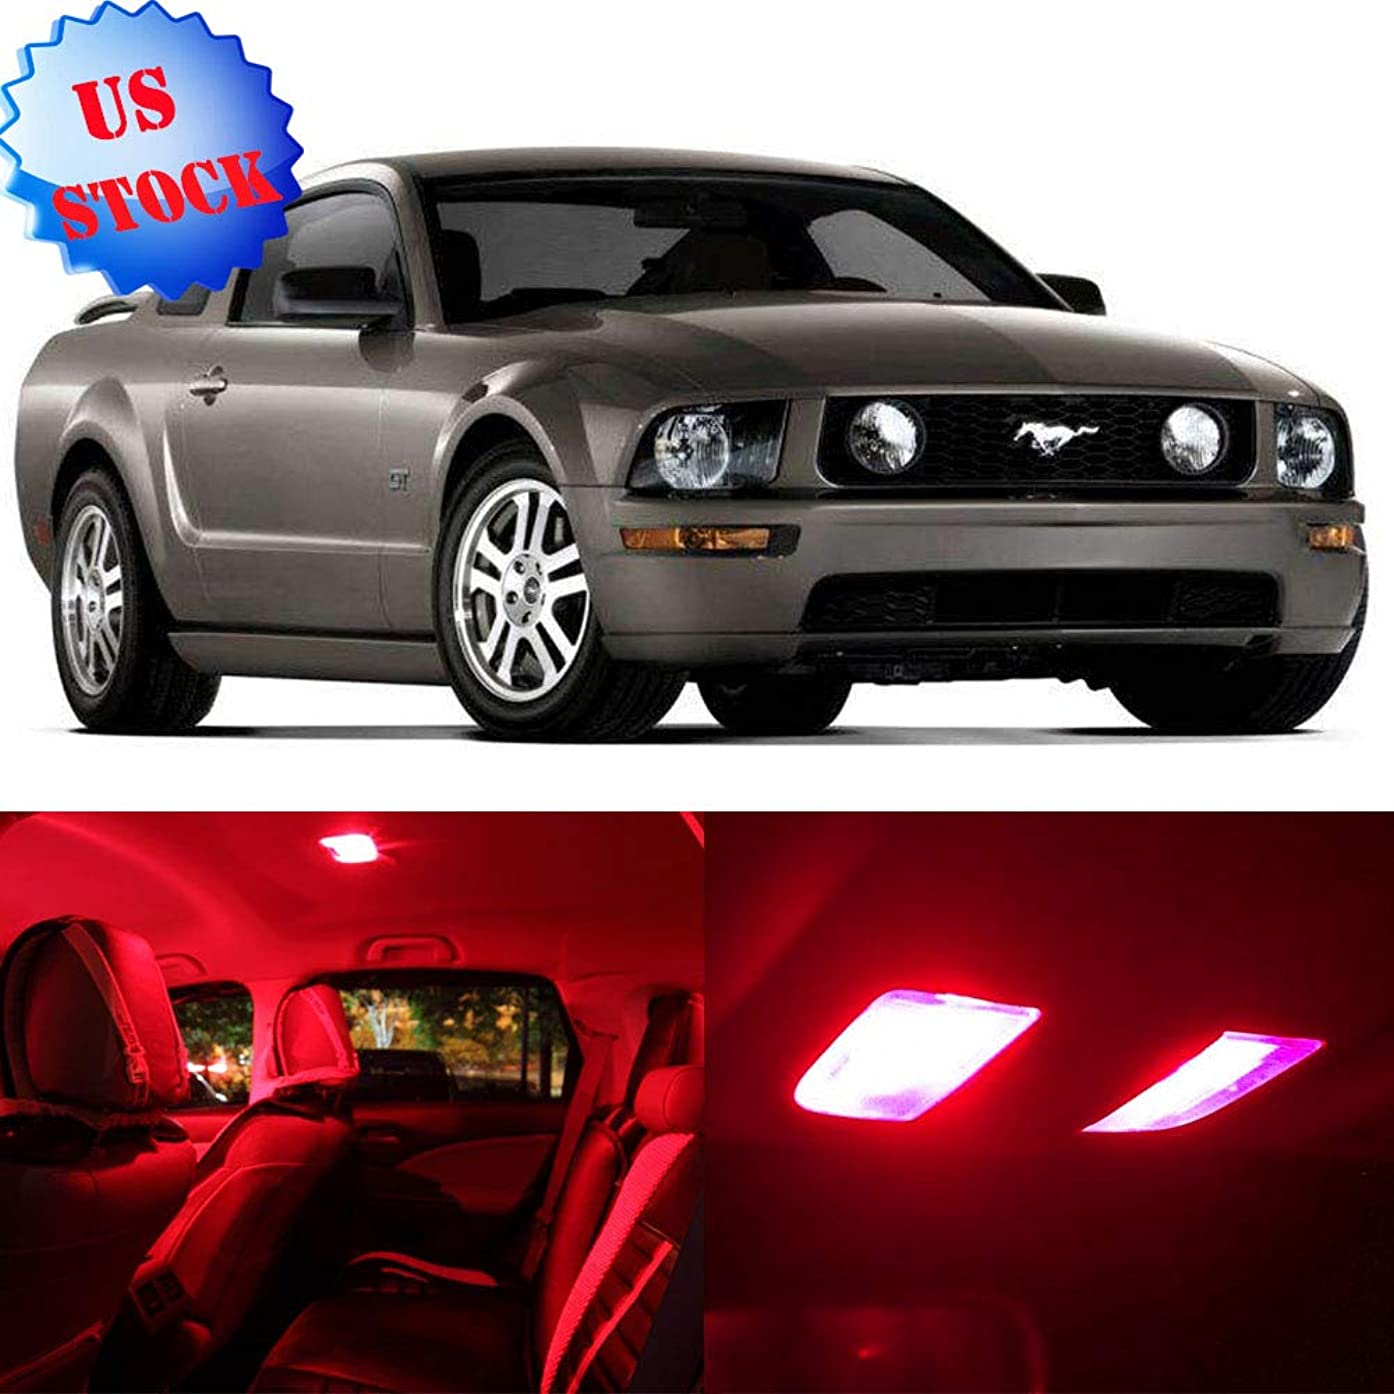 cciyu LED Bulb LED Interior Lights 9pcs Red Package Kit Accessories Replacement for 2005-2009 Ford Mustang